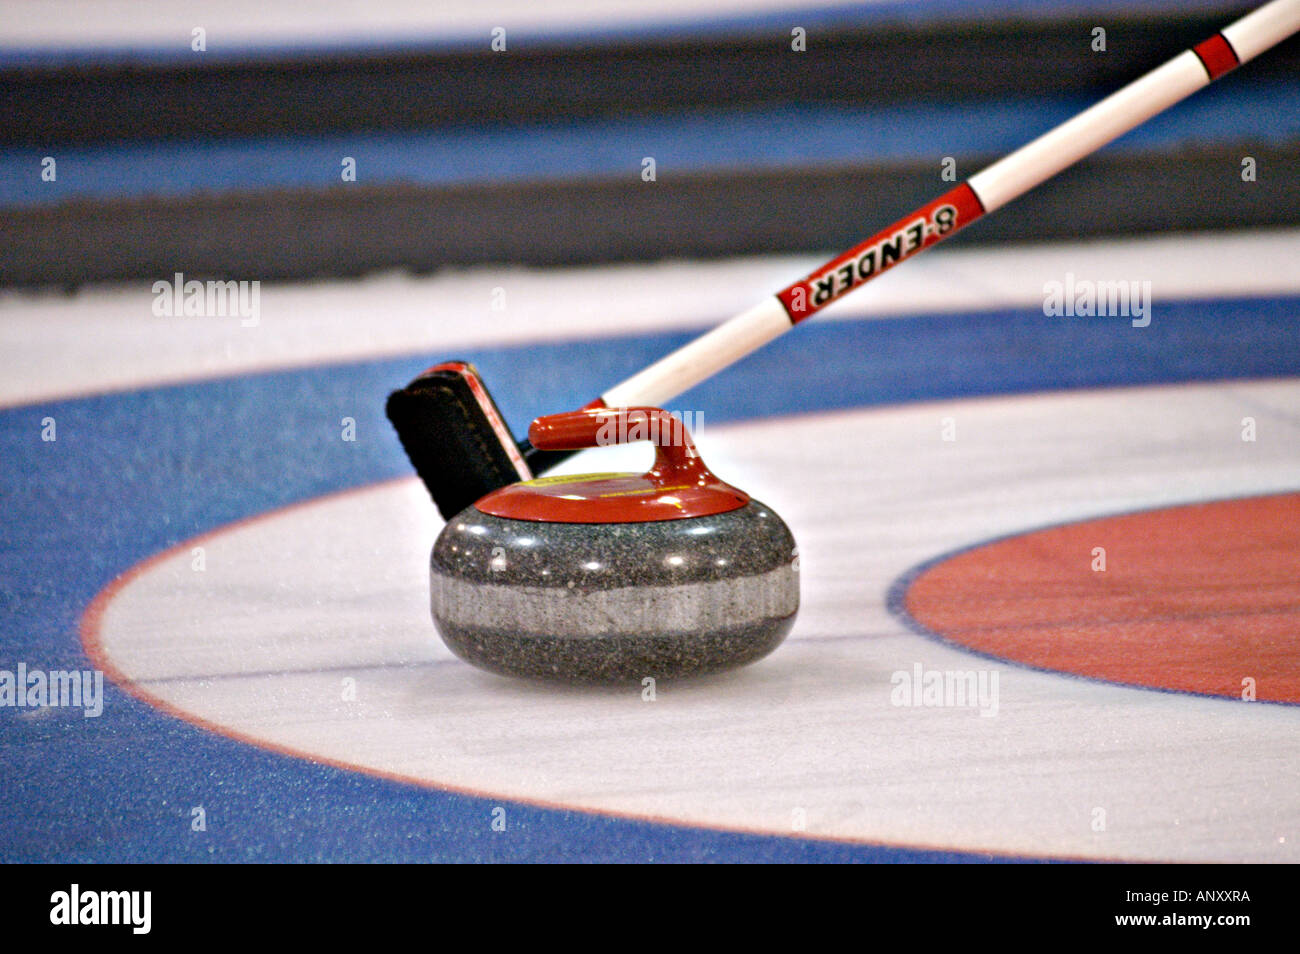 Curling Rock And Broom Stock Photo 8925689 Alamy